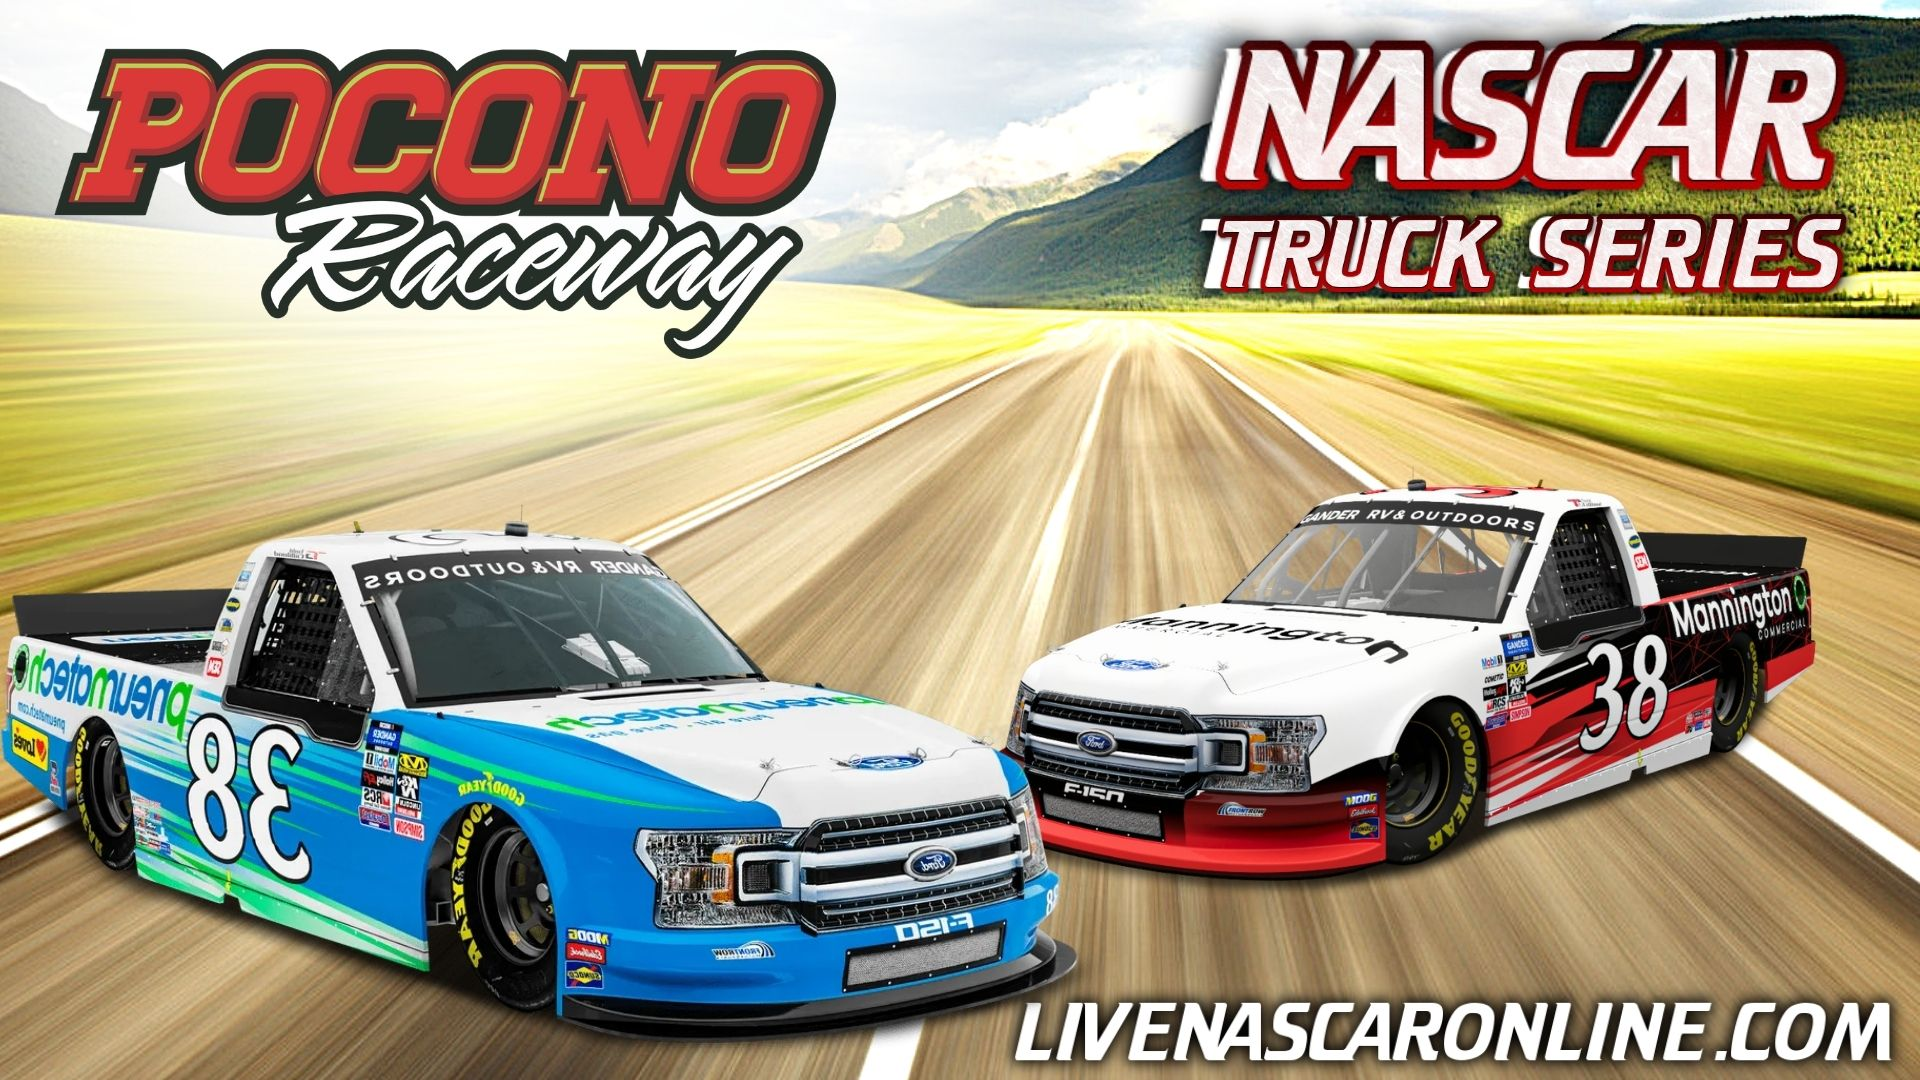 NASCAR Truck Race at Pocono Live Stream 2021